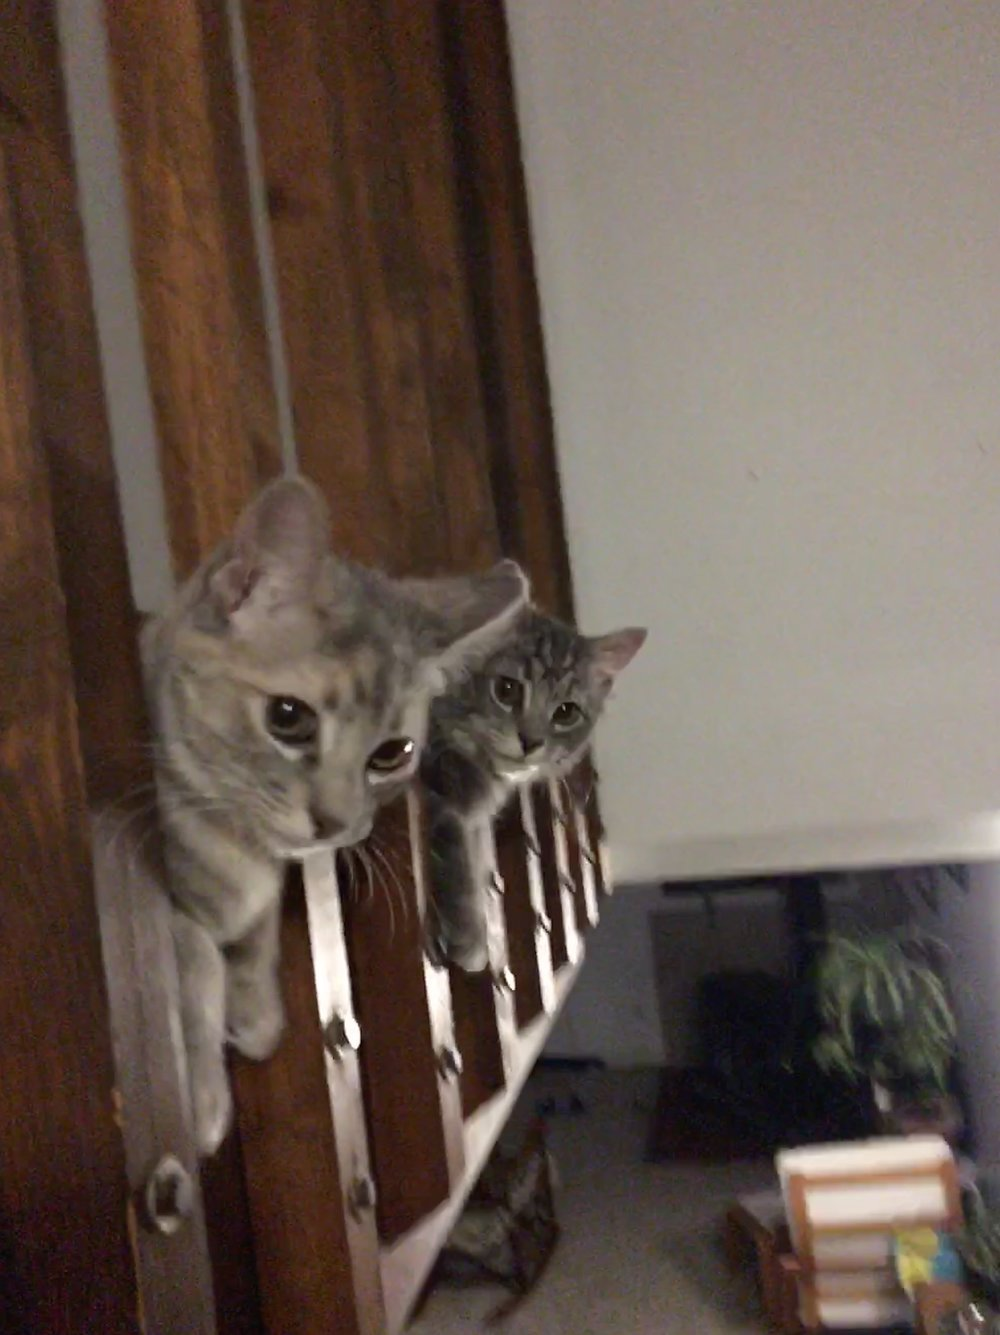 Sorry for the blurryness. But I look forward to these two faces welcoming me home every night!